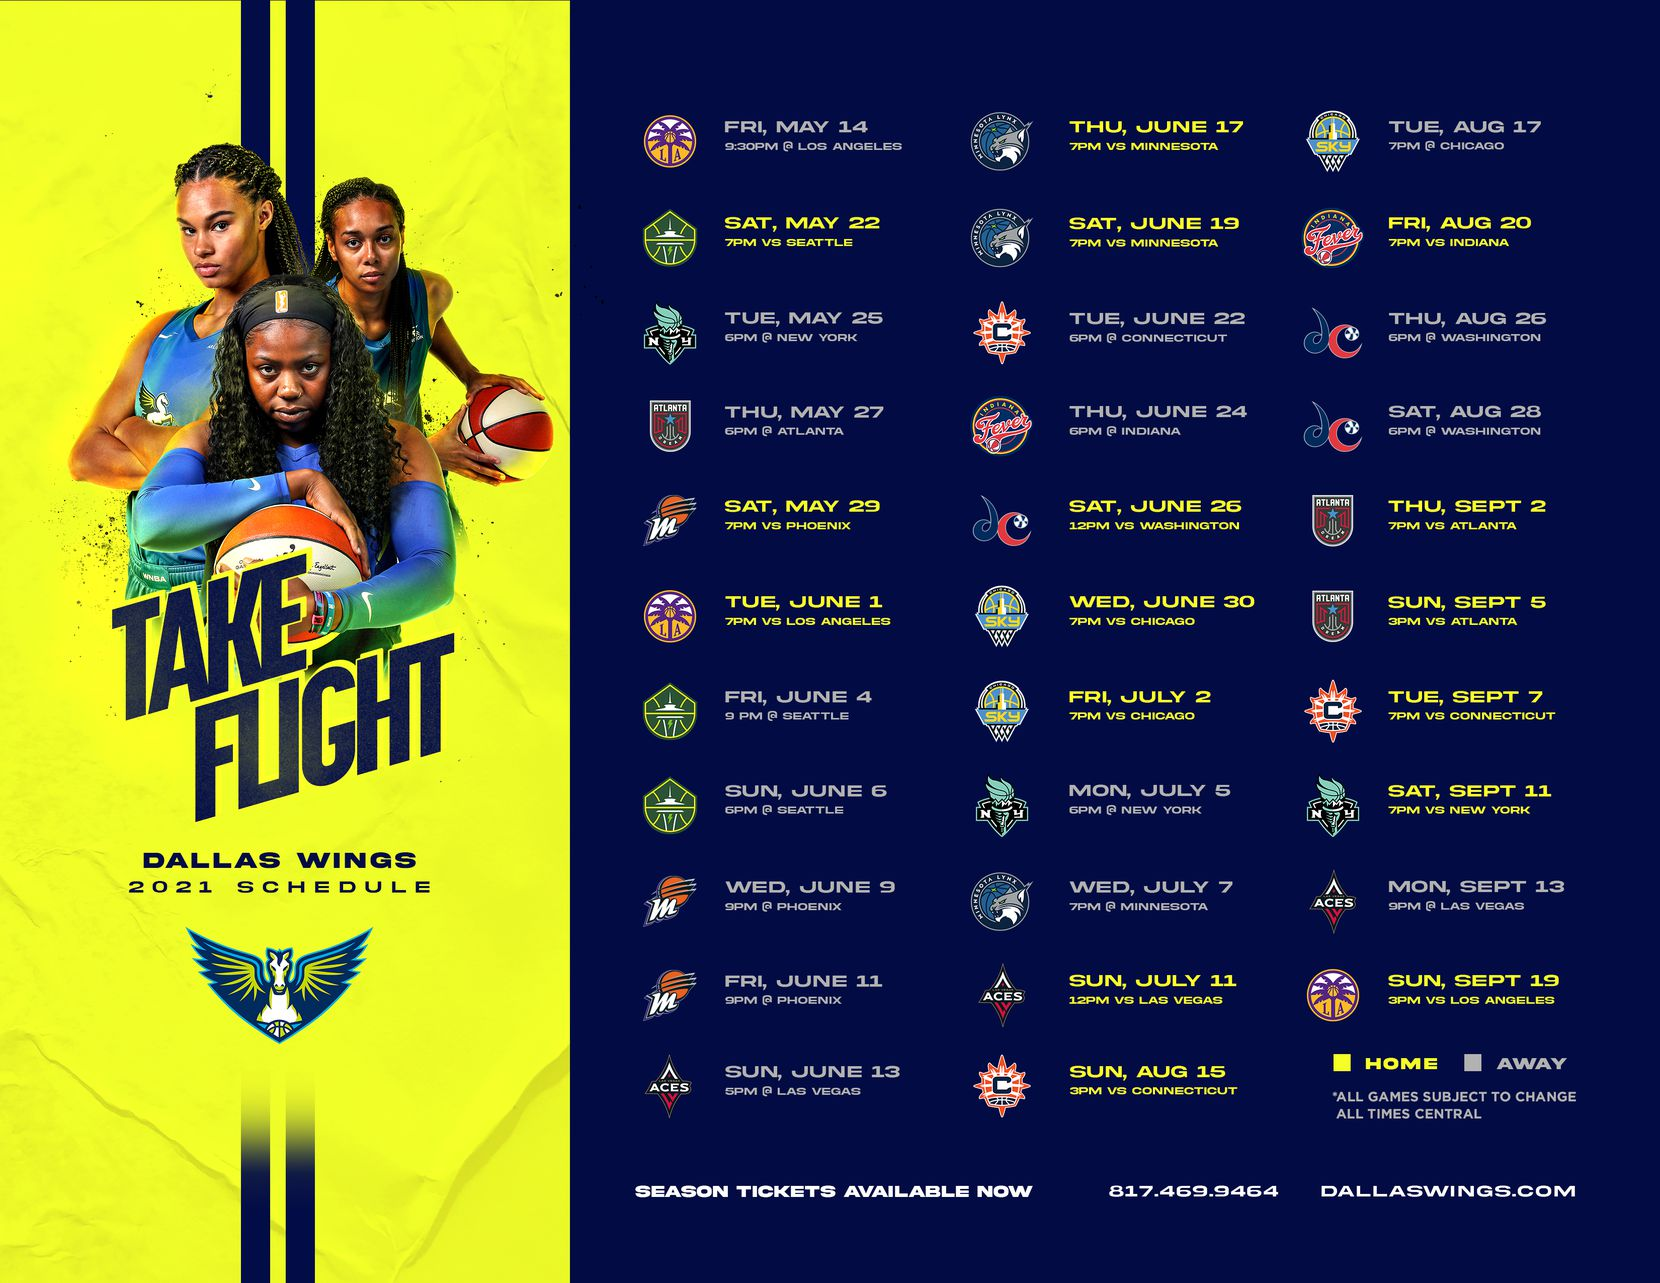 The Dallas Wings 2021 schedule.